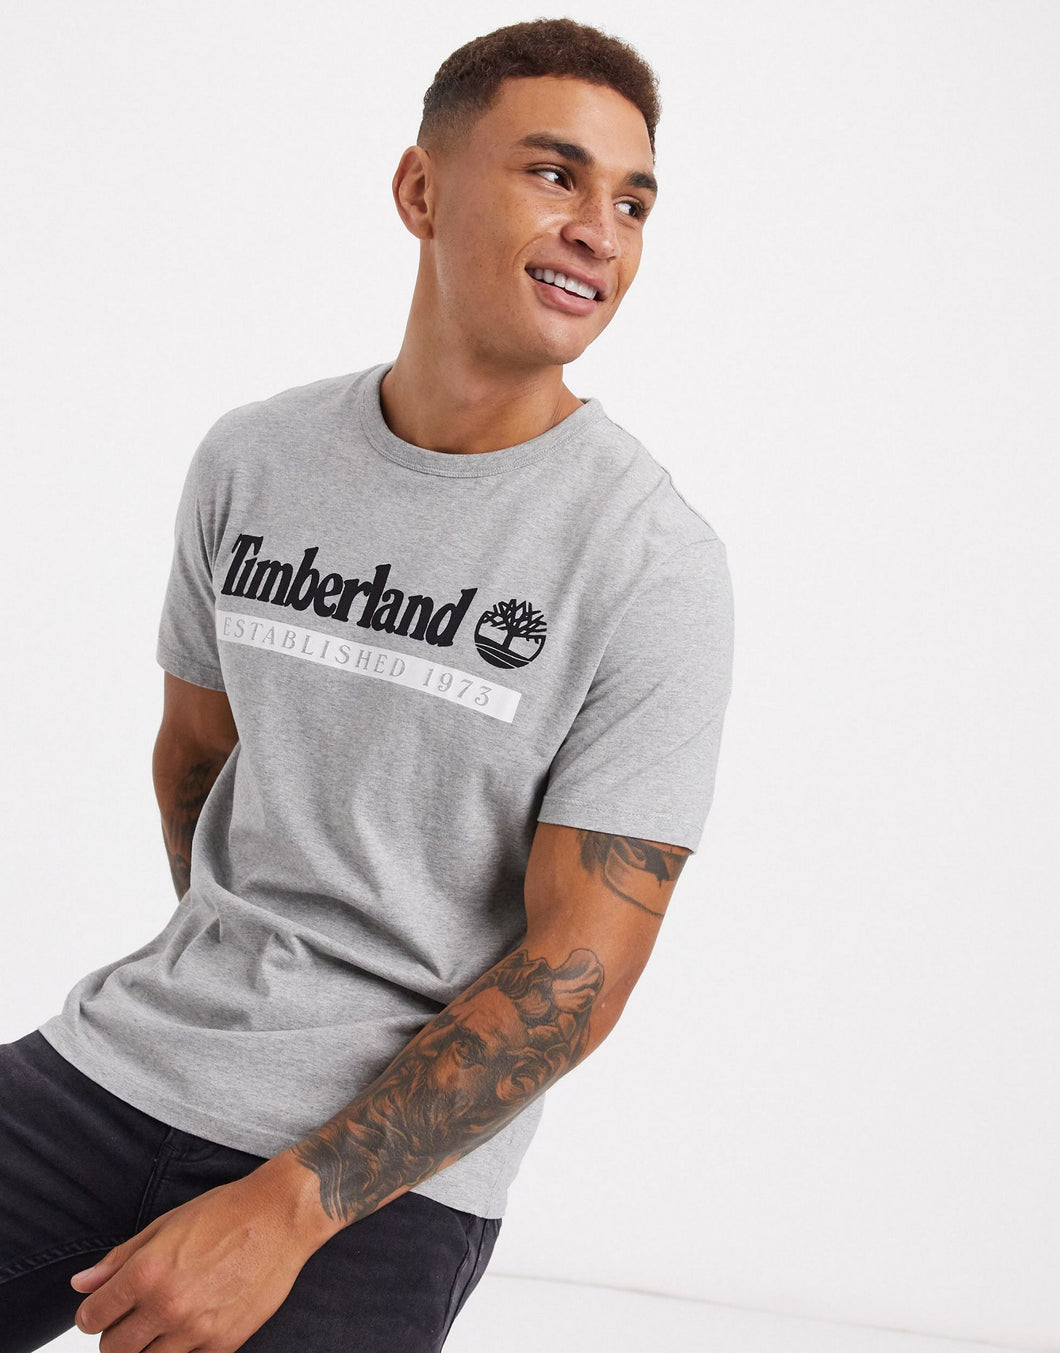 Timberland Men's Established Tee